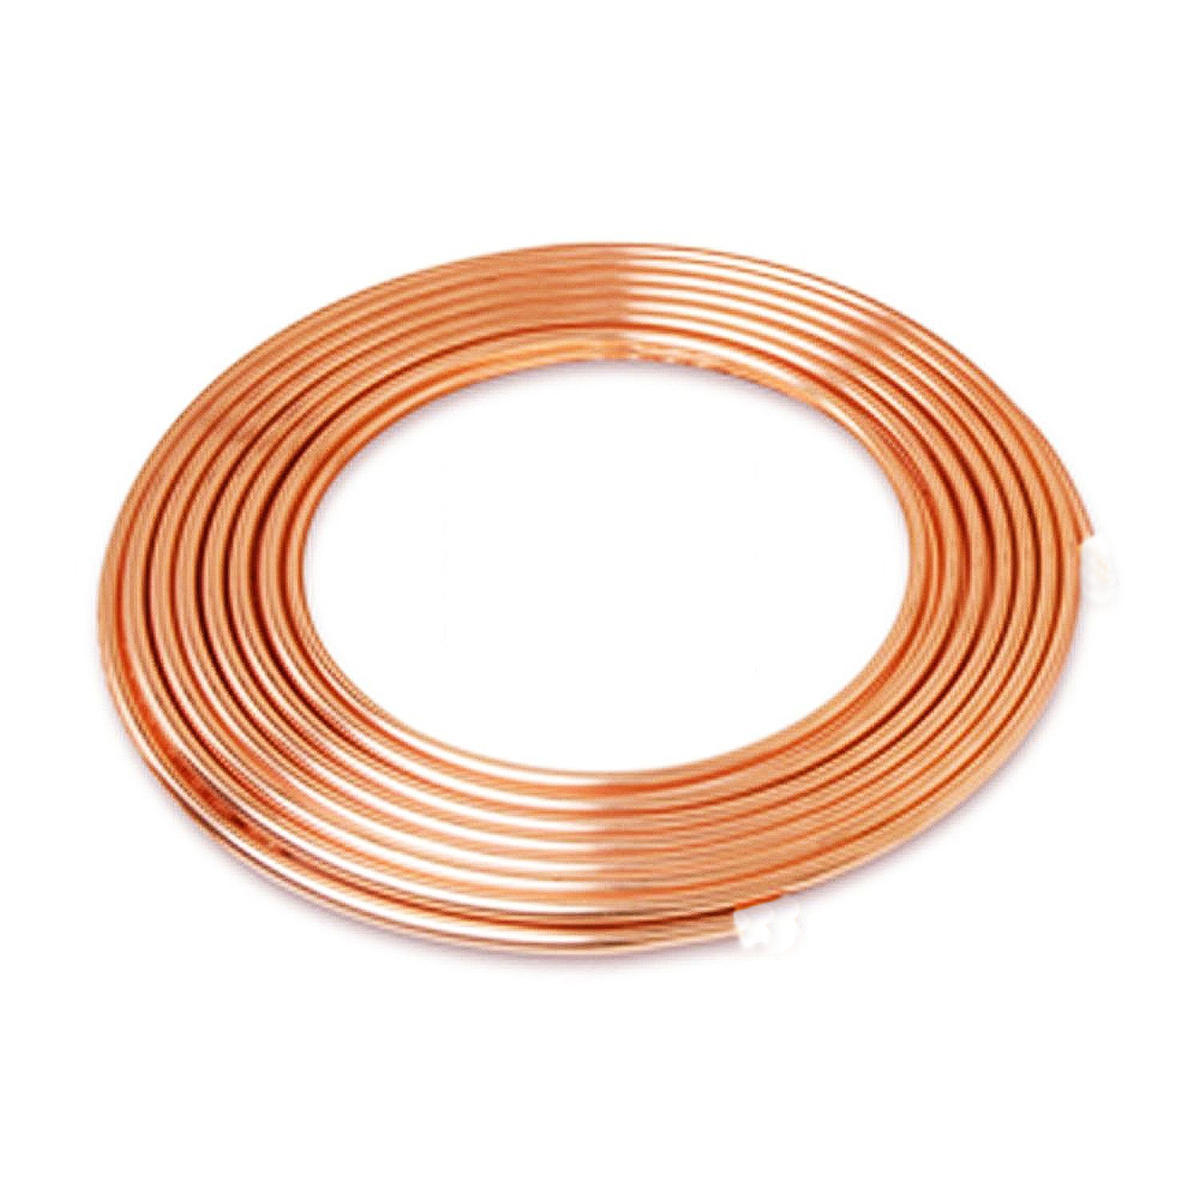 5m 3/8inch Copper Coil Pipe Air Conditioner Tube Refrigeration R410a Pancake HVAC